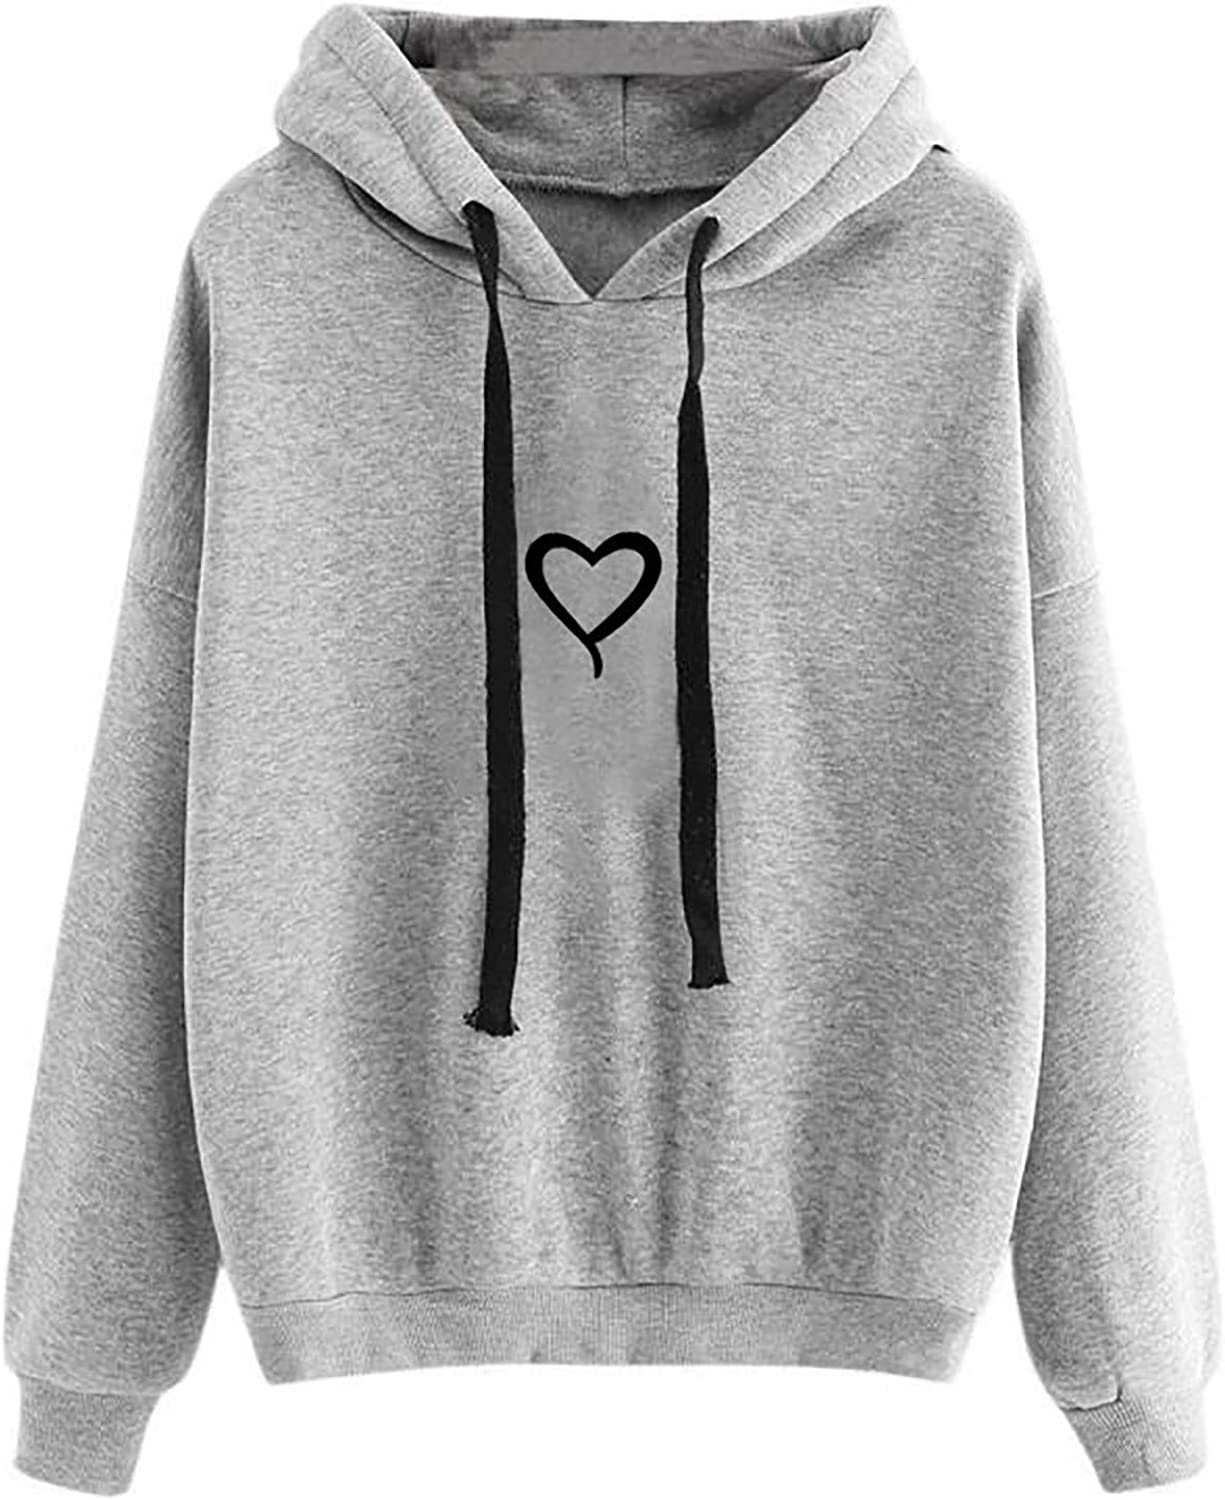 Sweatshirts for Women, Womens Long Sleeve Cute Graphic Hoodie and Sweatshirt Crewneck Casual Loose Pullover Tops